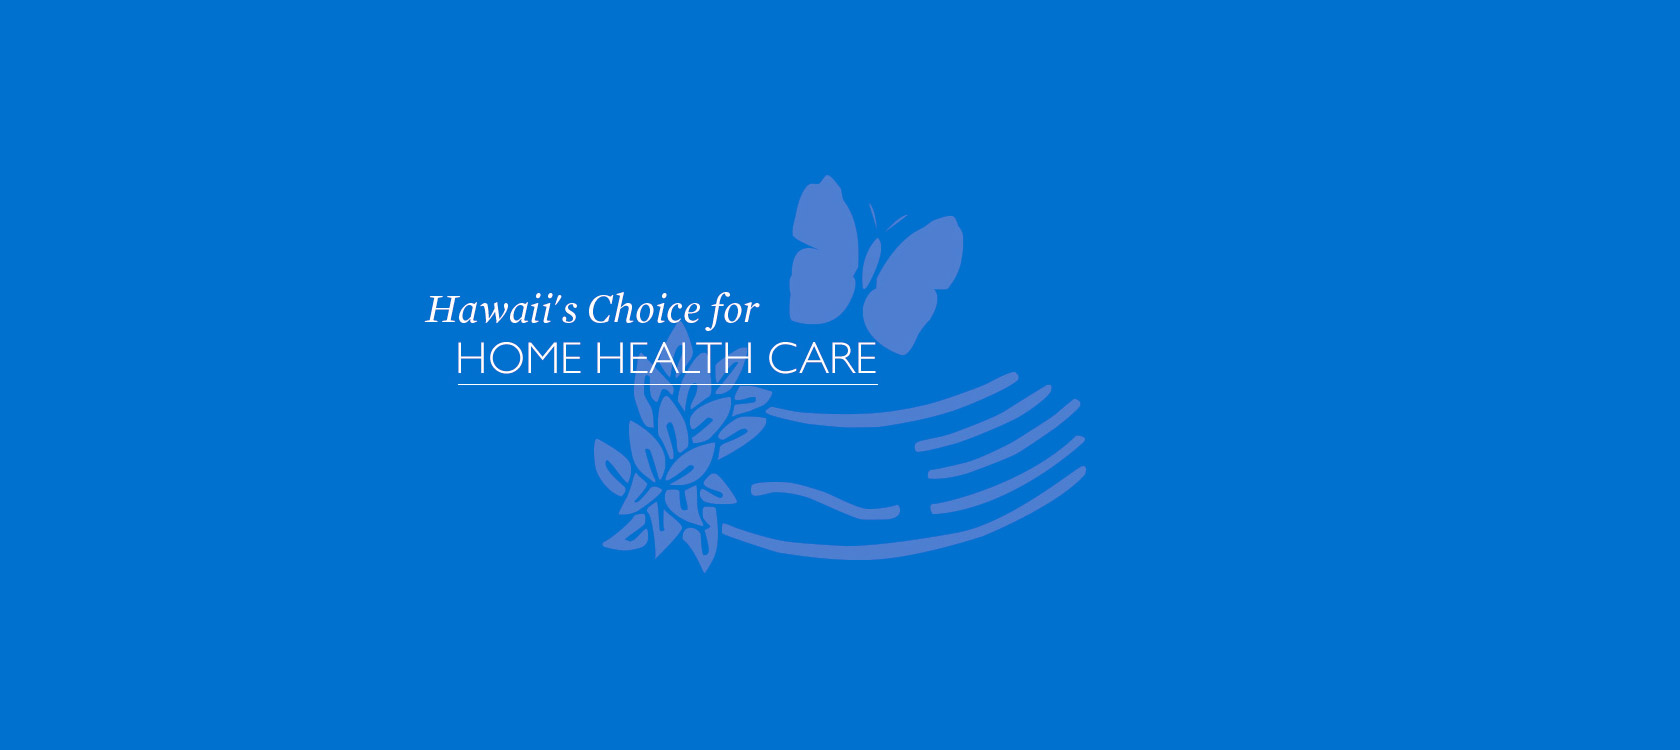 Hawaii's Choice for Home Health Care